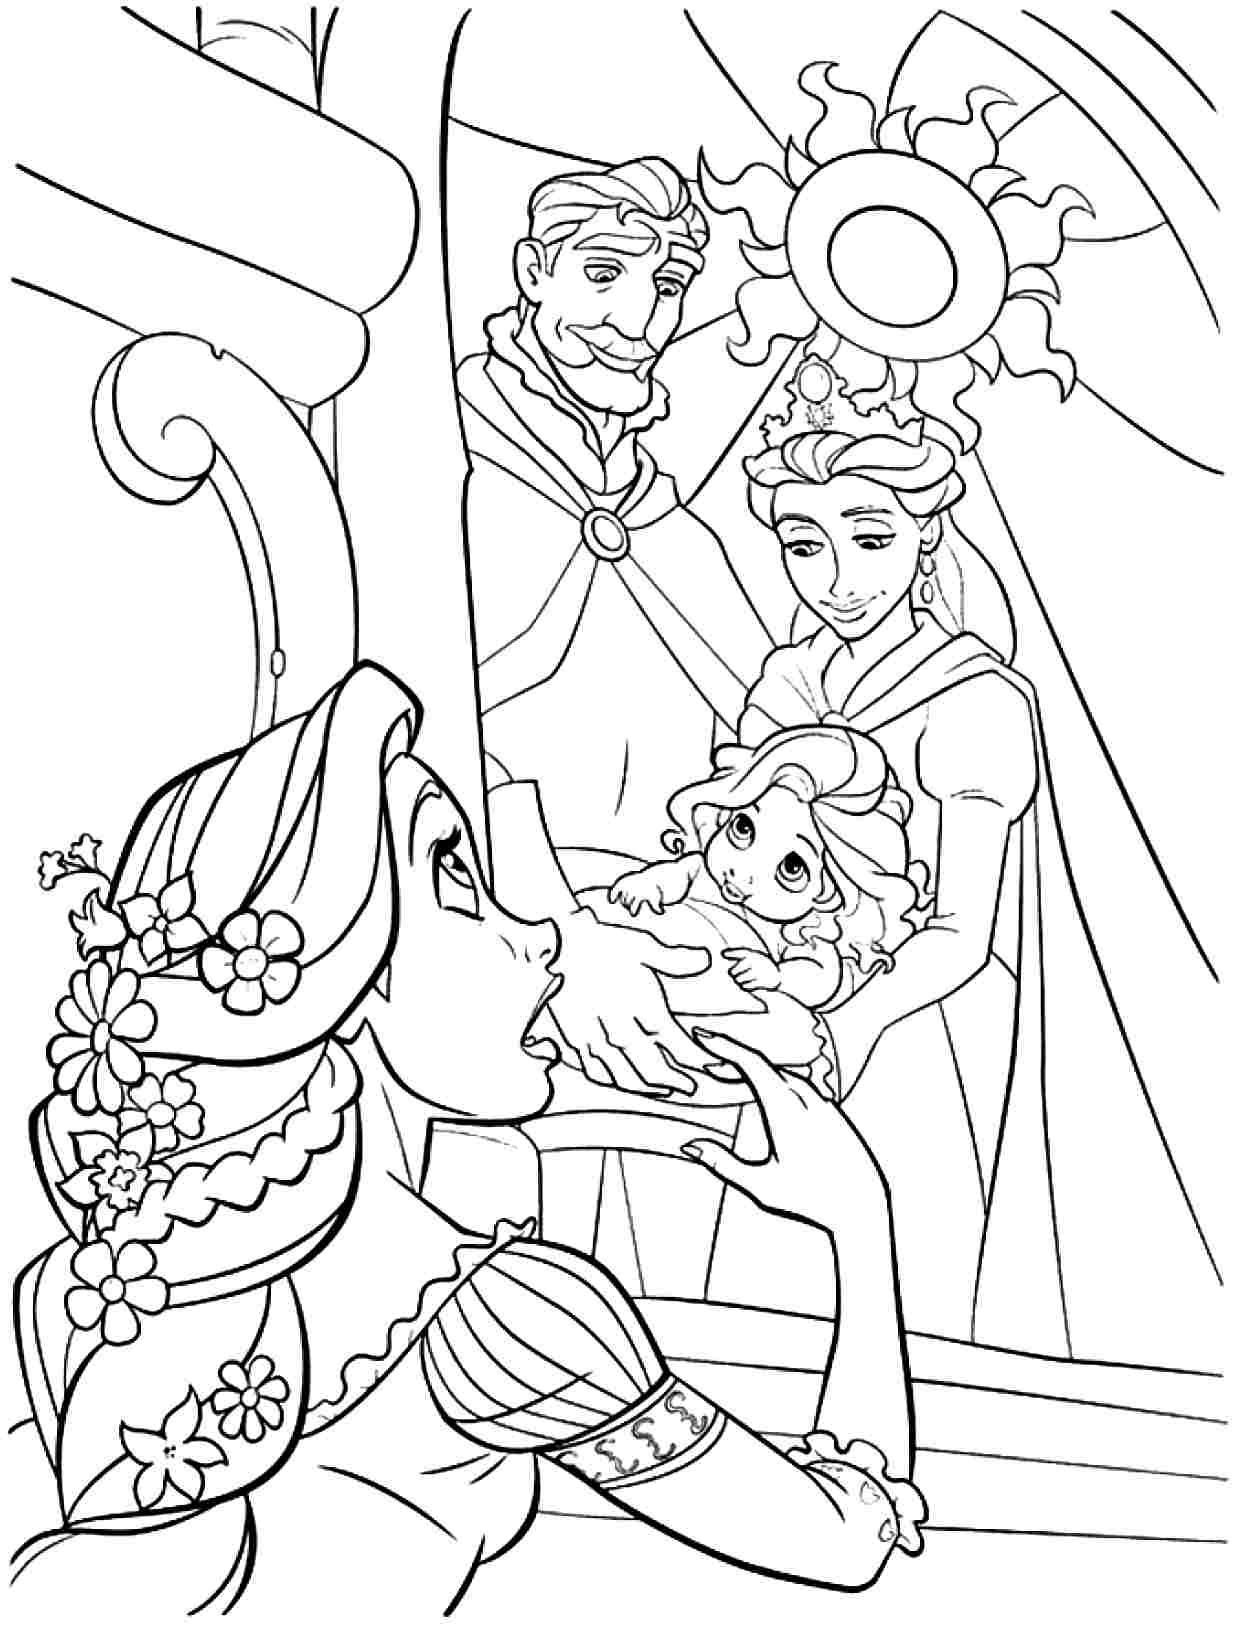 tangled pictures to colour disney39s tangled coloring pages disneyclipscom to tangled colour pictures